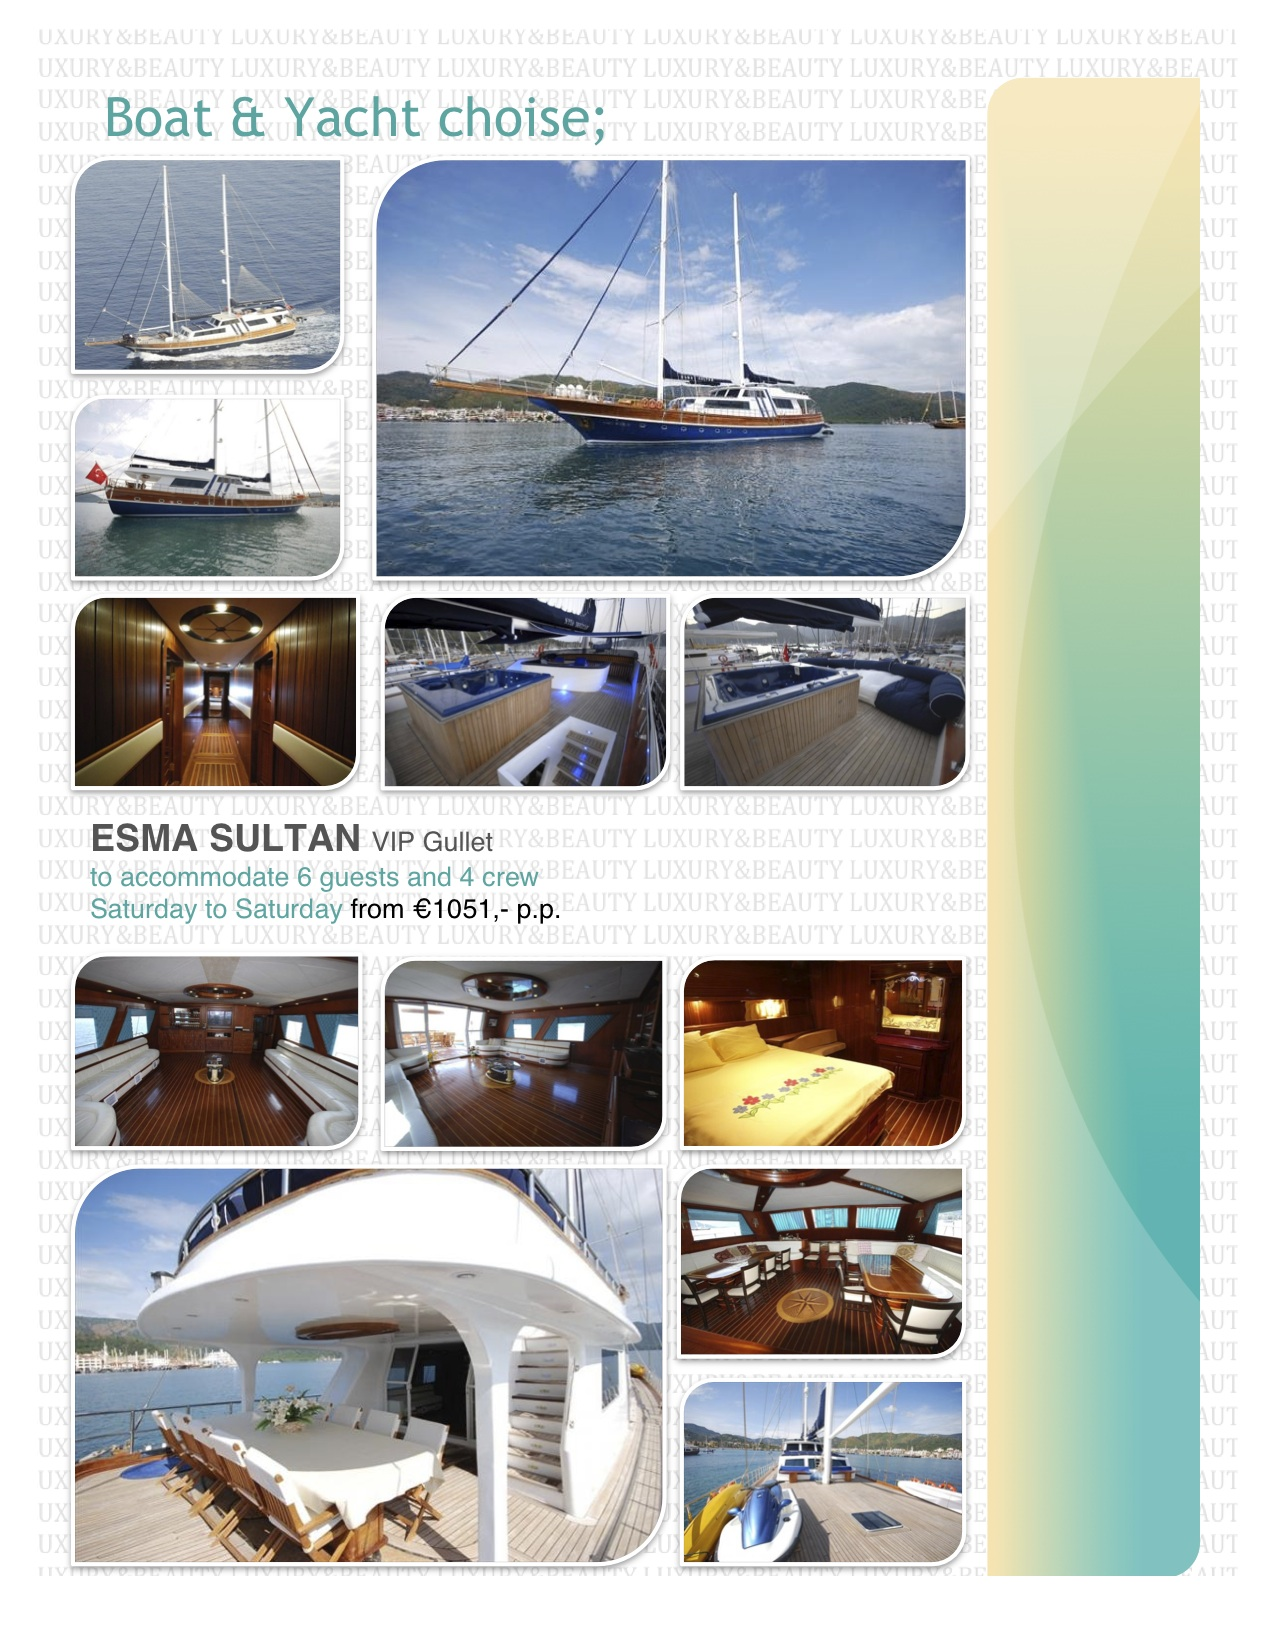 Luxury&Beauty_Yoga_Yacht.jpg13